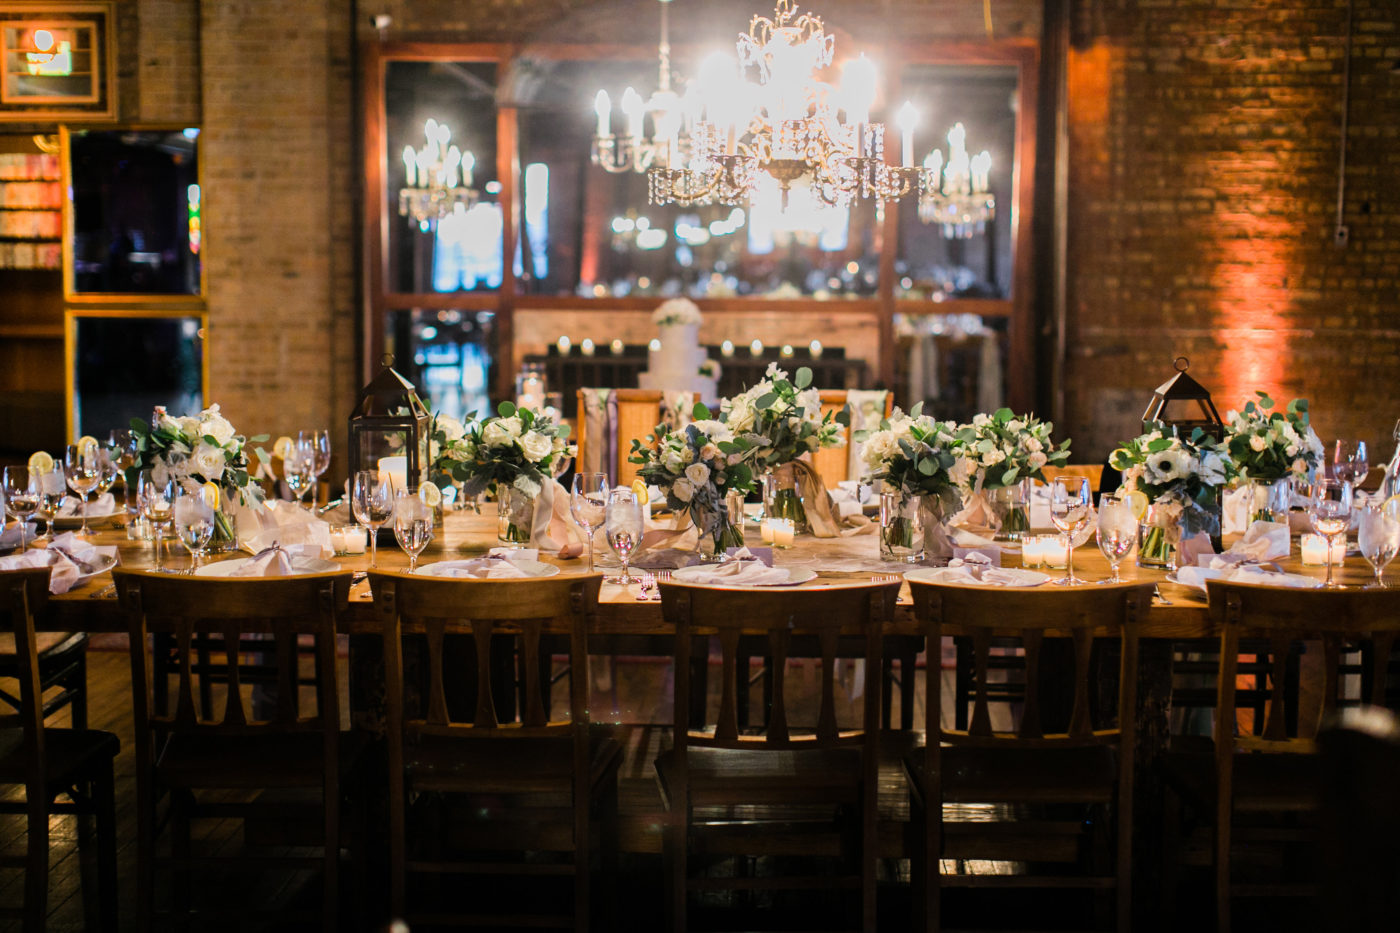 Salvage One Wedding Cost | Events Salvage One